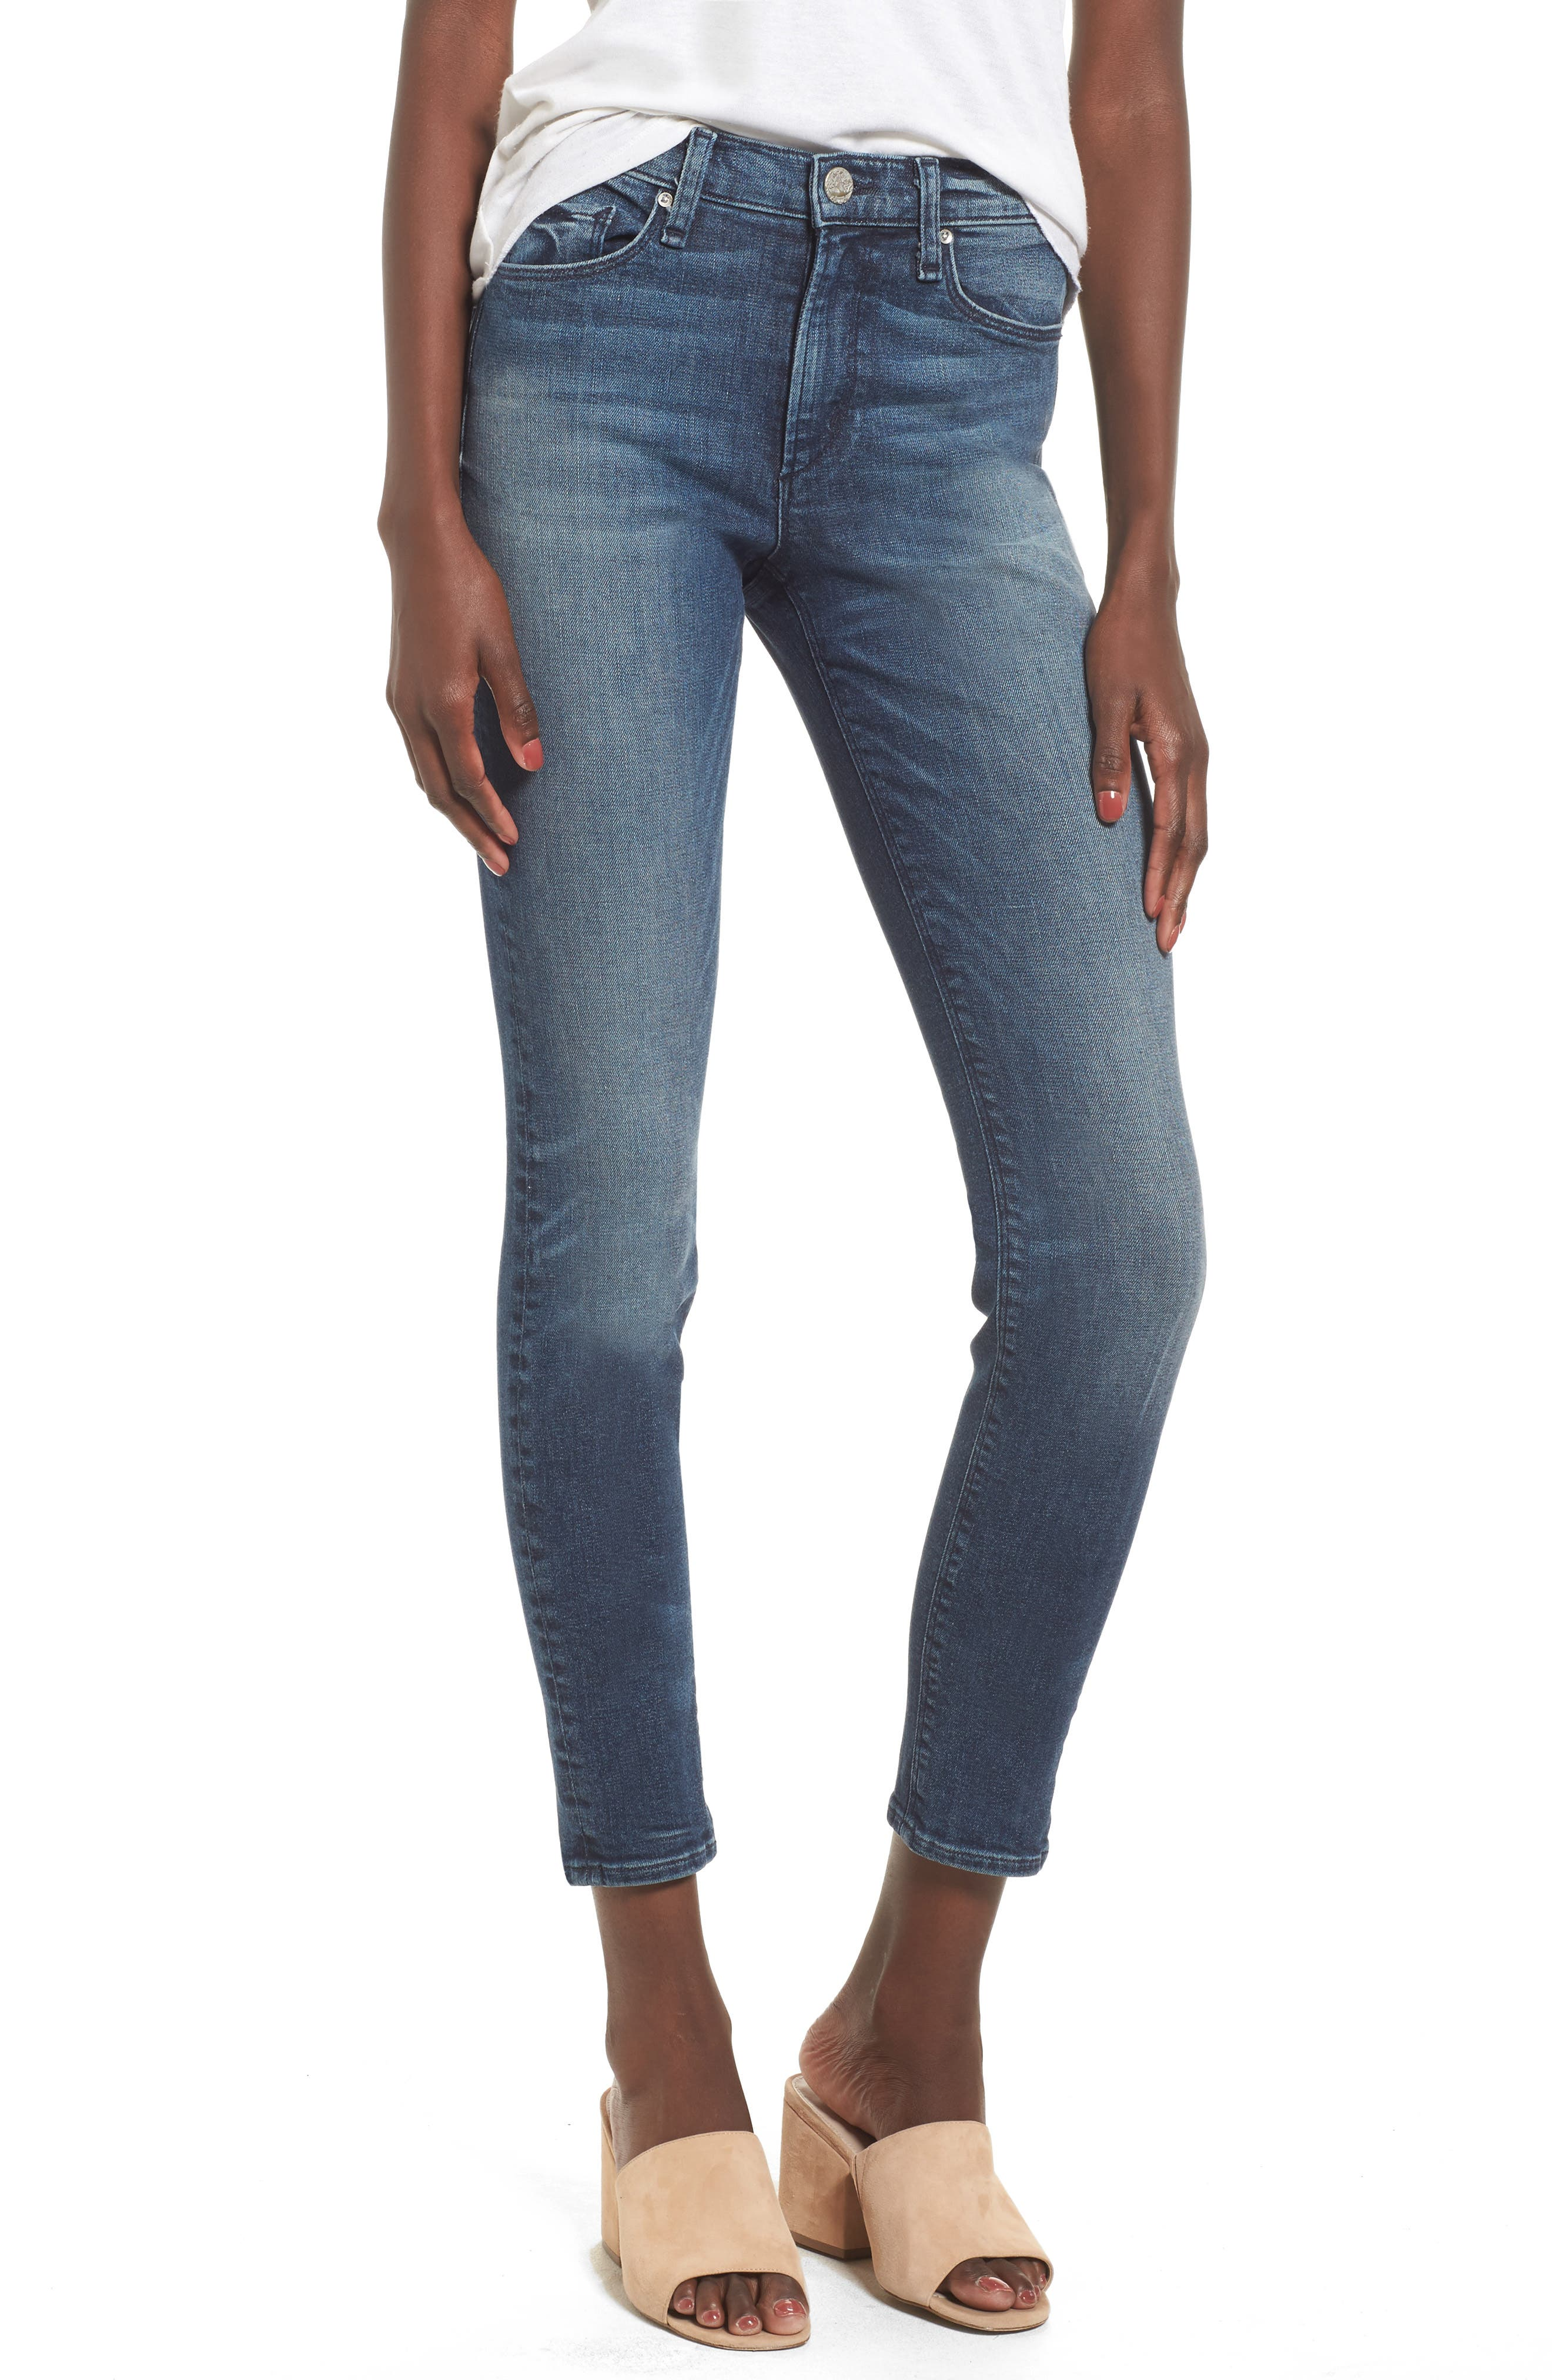 Main Image - McGuire Newton High Waist Skinny Jeans (Isle in the Sky)